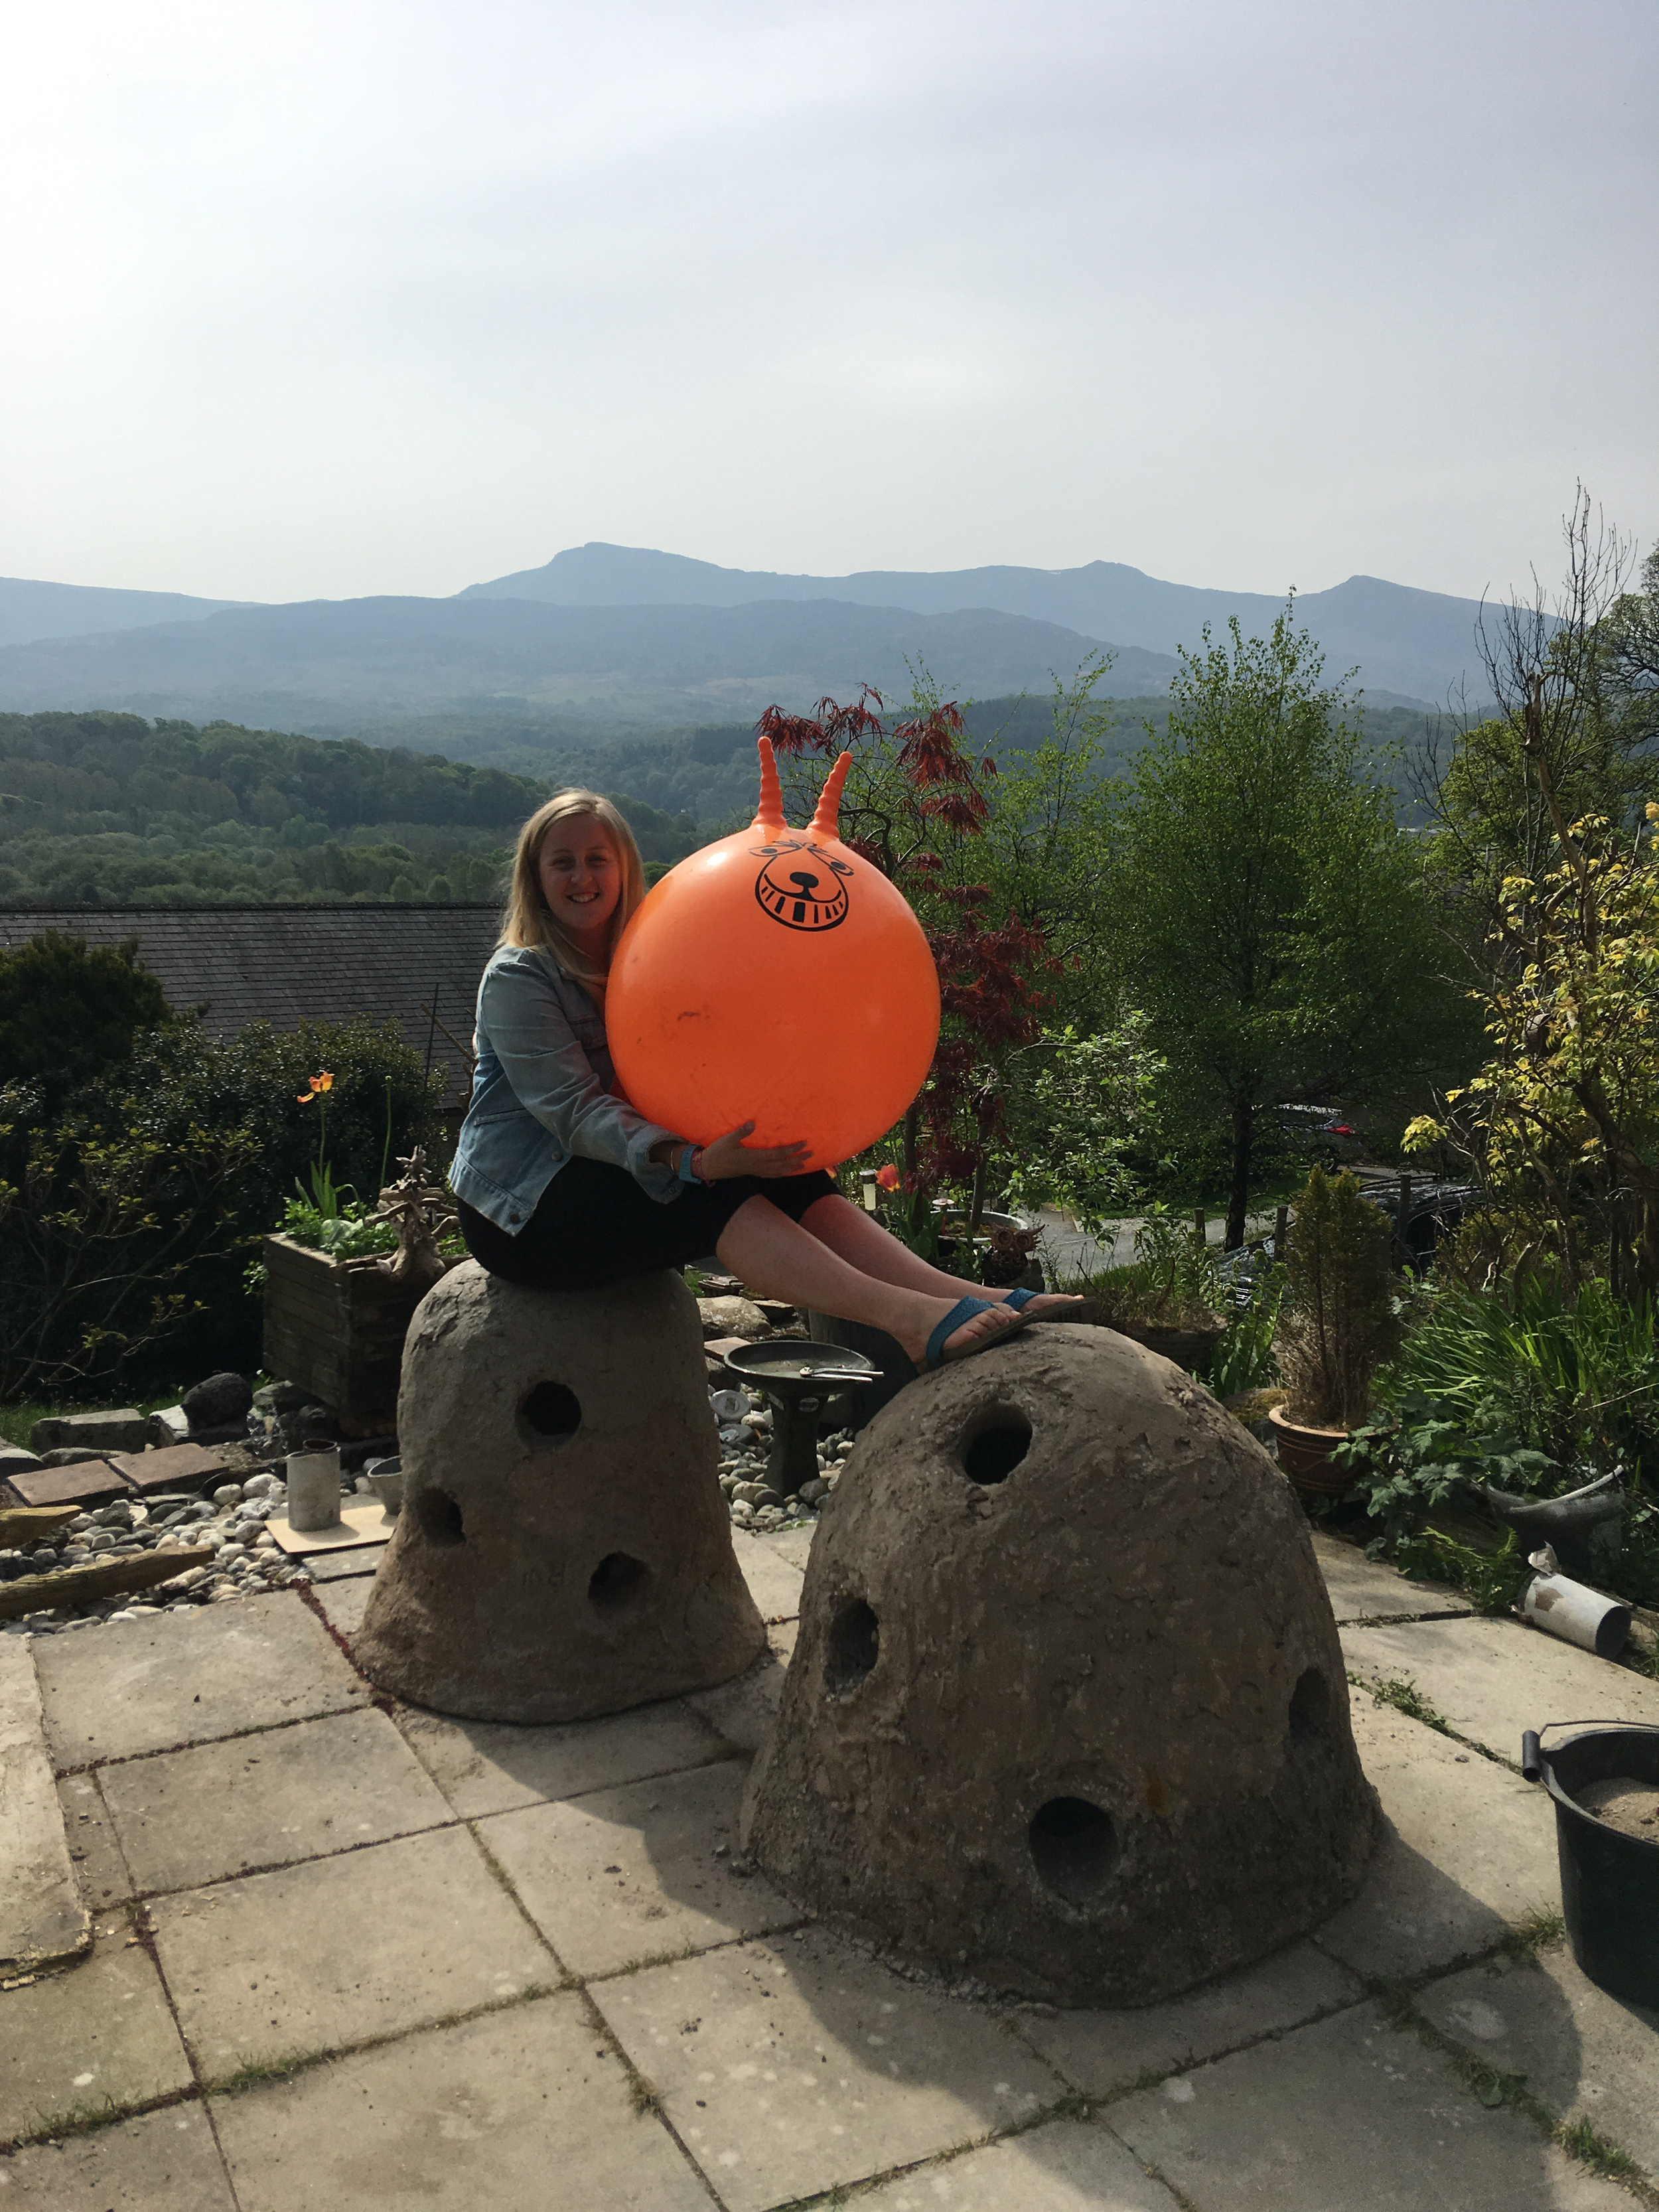 Kath with the Fish Hives (and the space hopper that proved crucial to their design!). Credit: Kath Whittey (with permission)